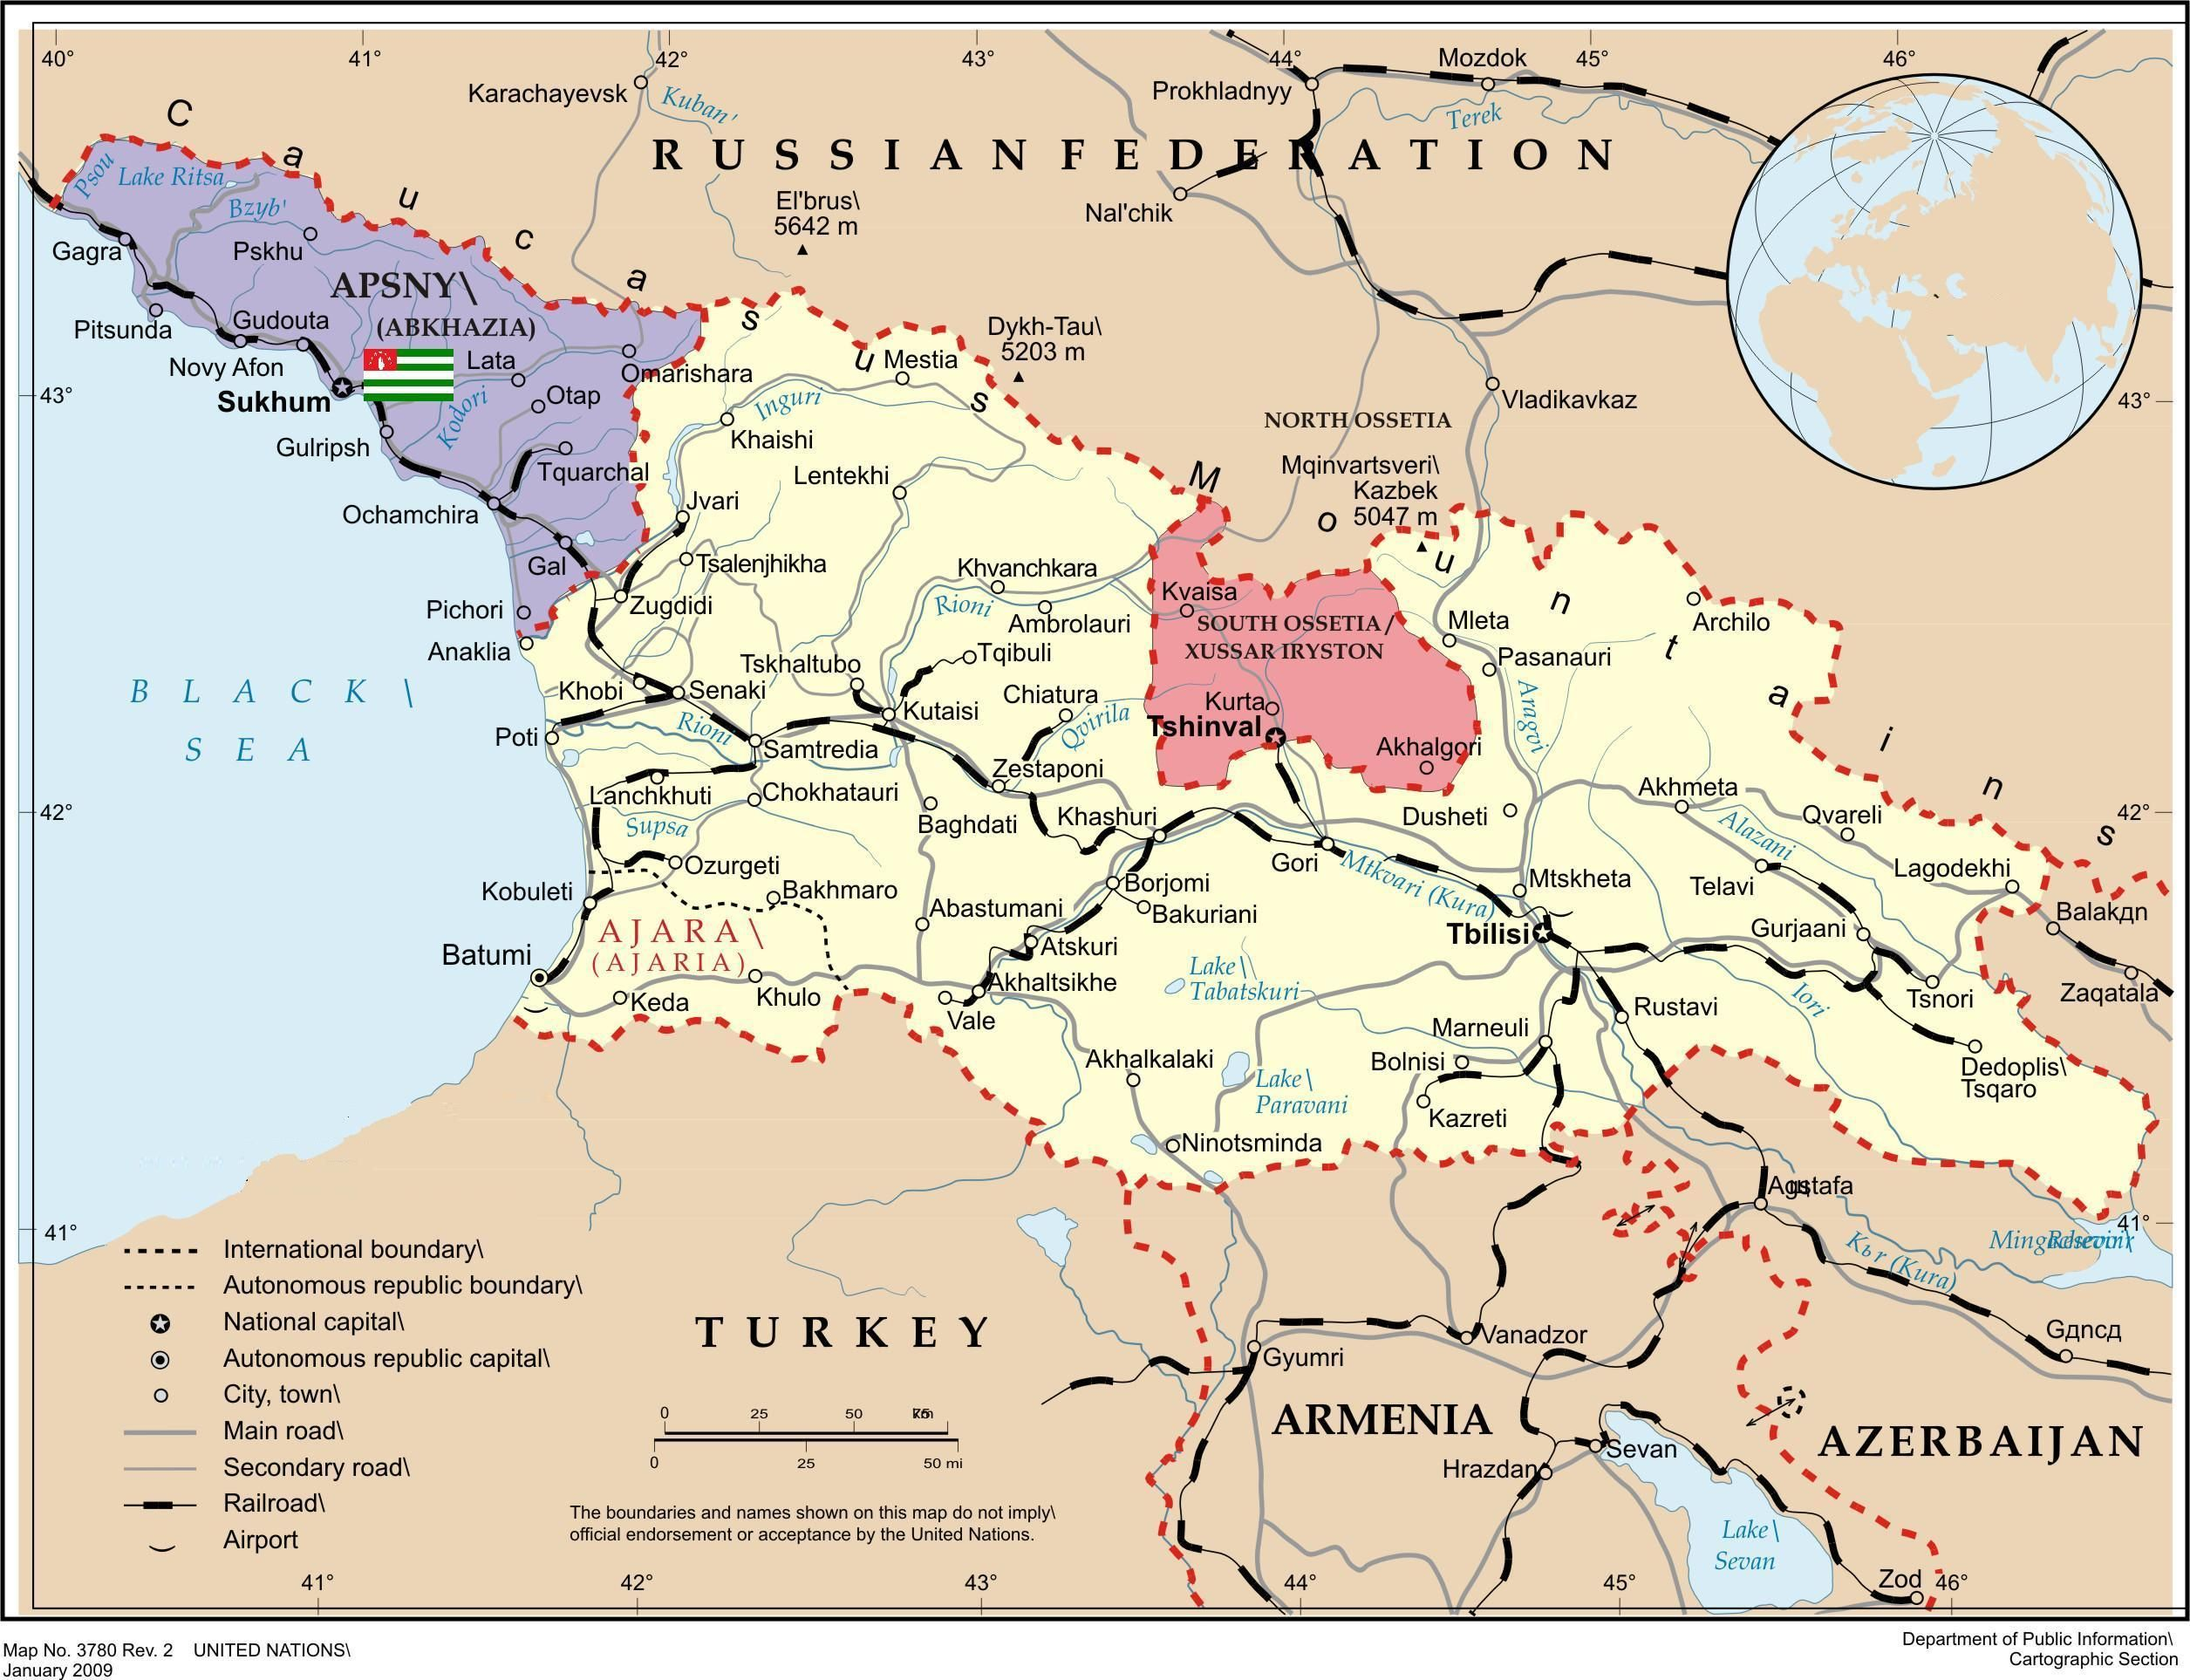 Georgia (Caucasus) | South ossetia, Georgia country, Georgia on mestia georgia map, denmark georgia map, north carolina georgia map, chechnya georgia map, batumi georgia map, kobuleti georgia map, ukraine georgia map, eastern europe georgia map, armenia georgia map, poti georgia map, gori georgia map, estonia georgia map, iran georgia map, republic georgia map, krubera cave georgia map, svaneti georgia map, tbilisi georgia map, dmanisi georgia map, russia georgia map, adjara georgia map,